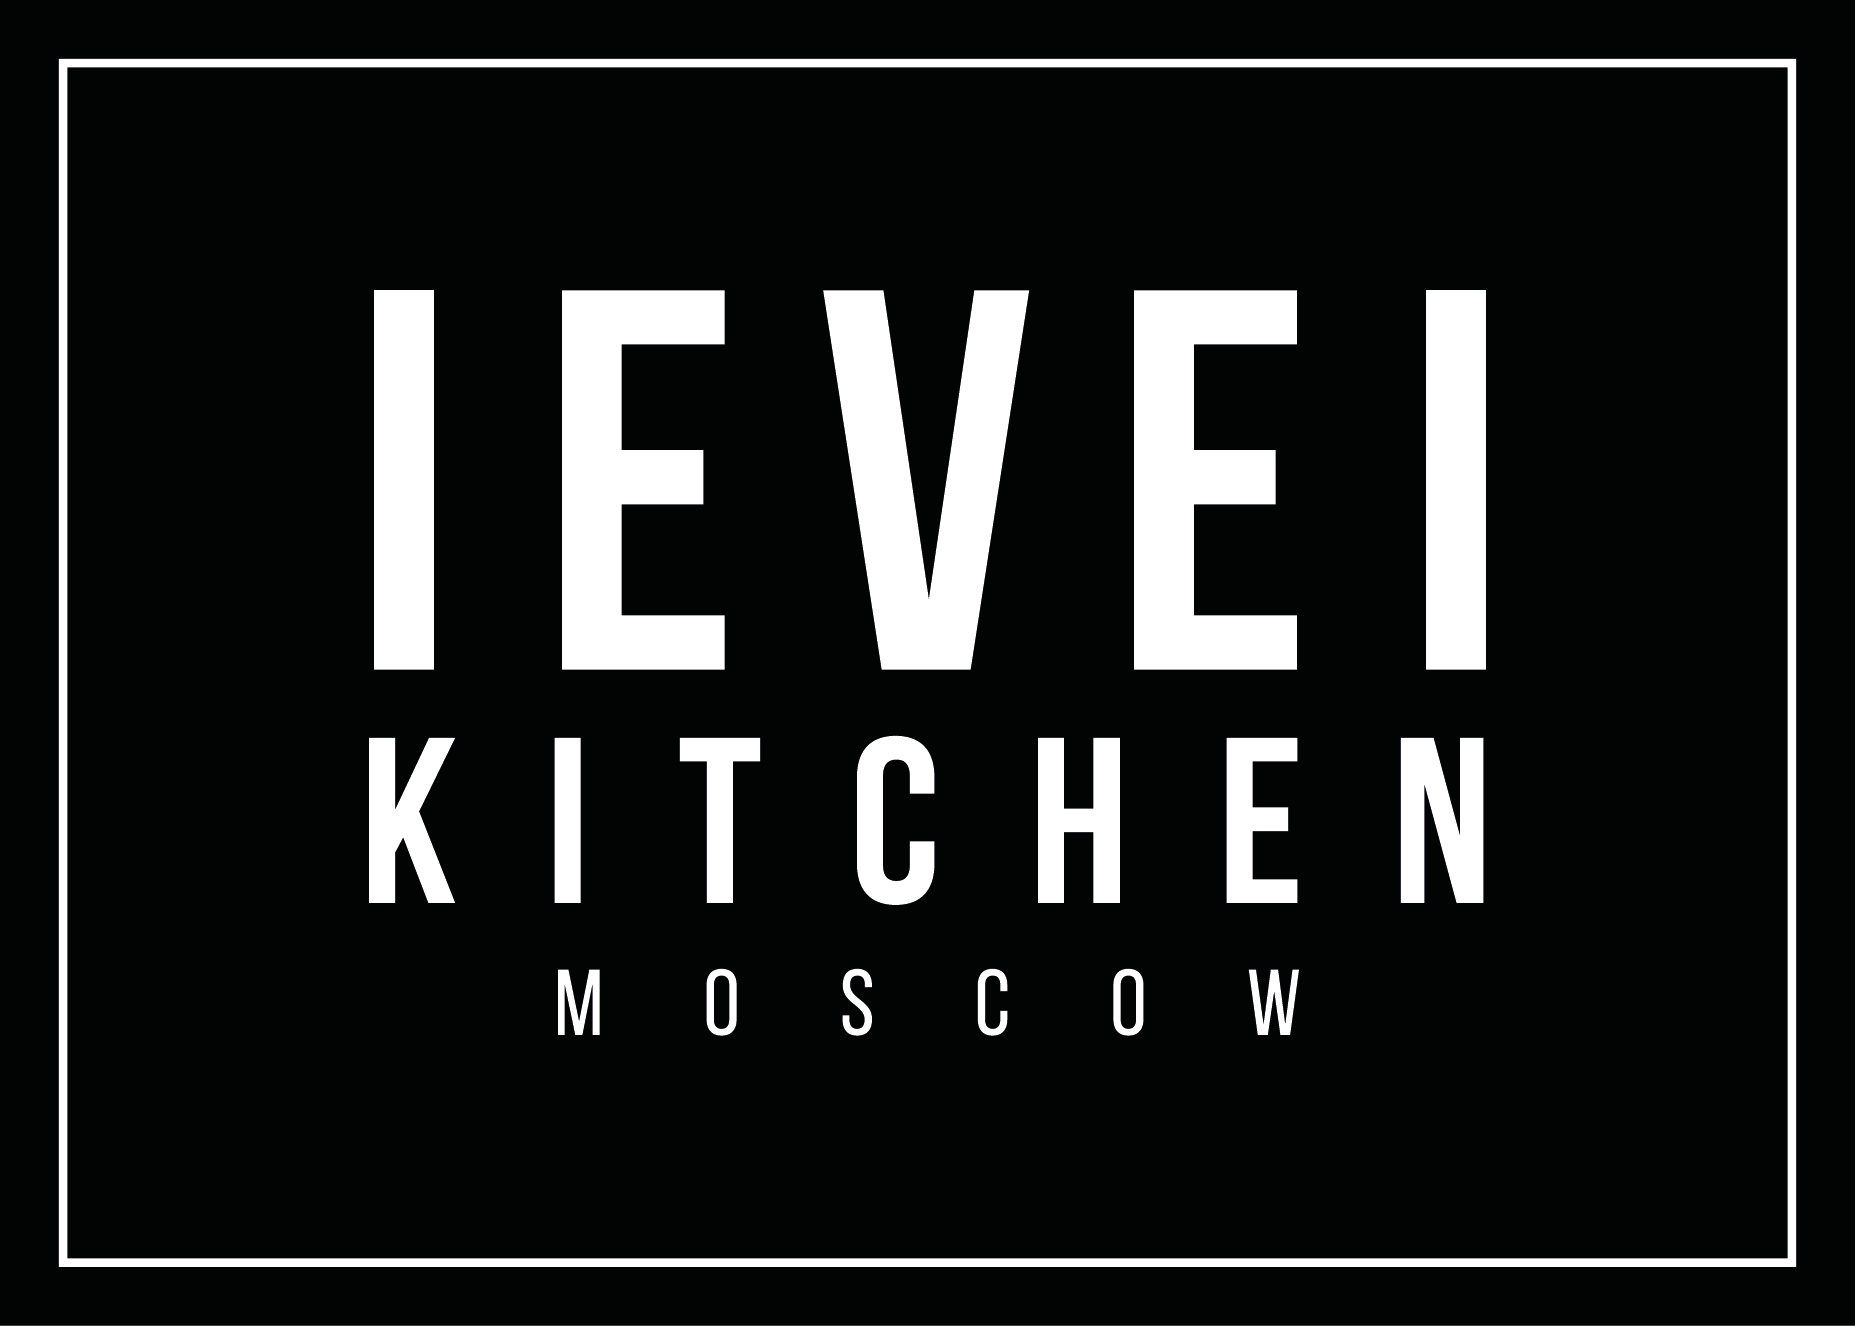 Level kitchen moscow